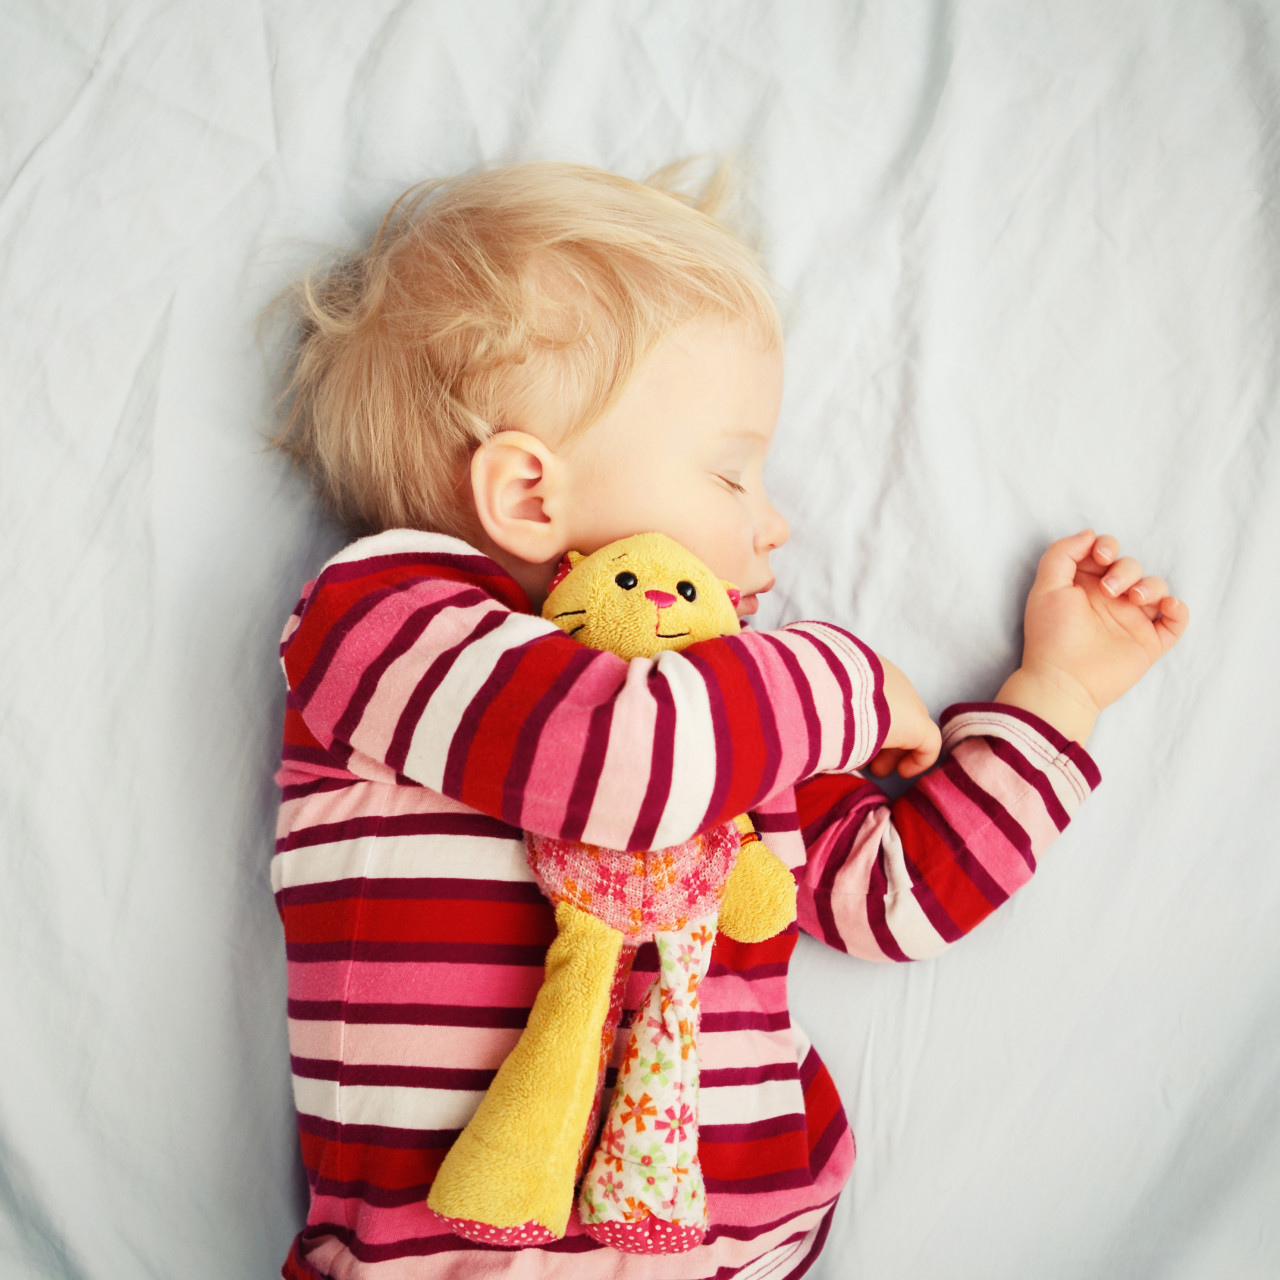 child asleep in bed cuddling a soft toy